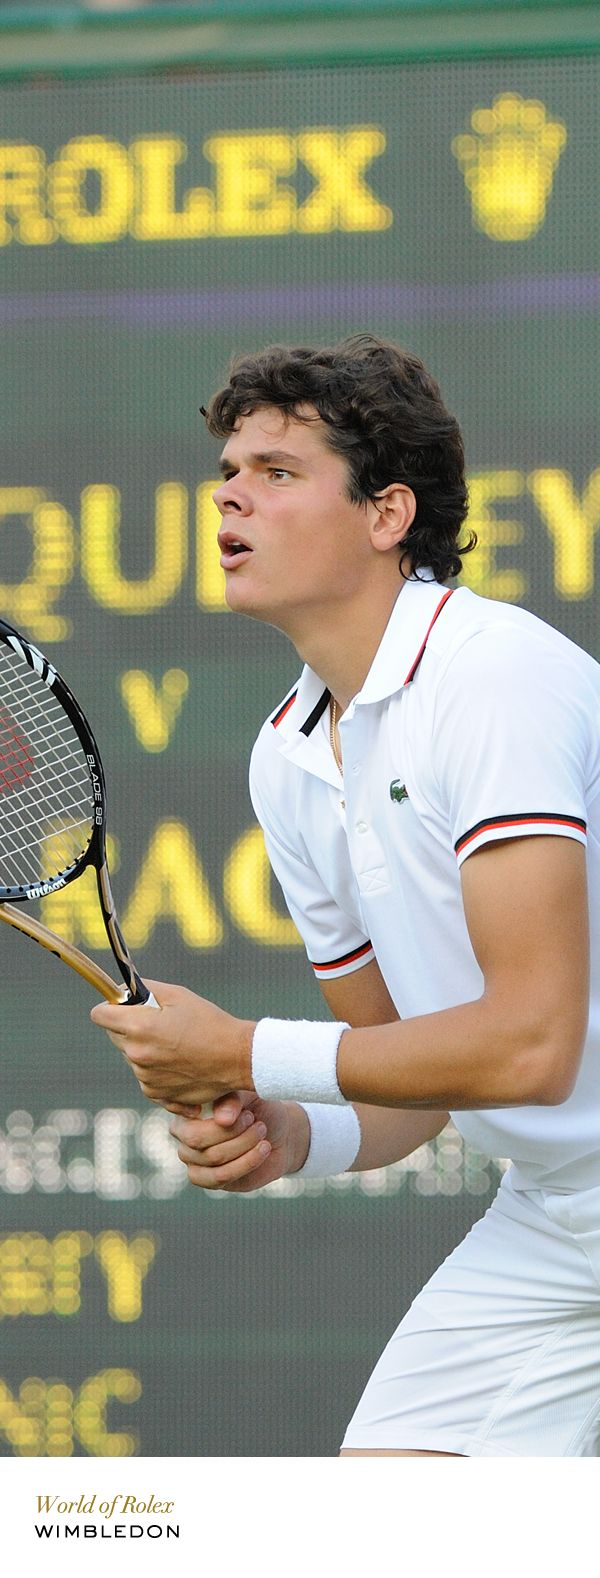 Wow, we finally have a contender for the top ten in men's tennis.  Exciting to watch Milos.